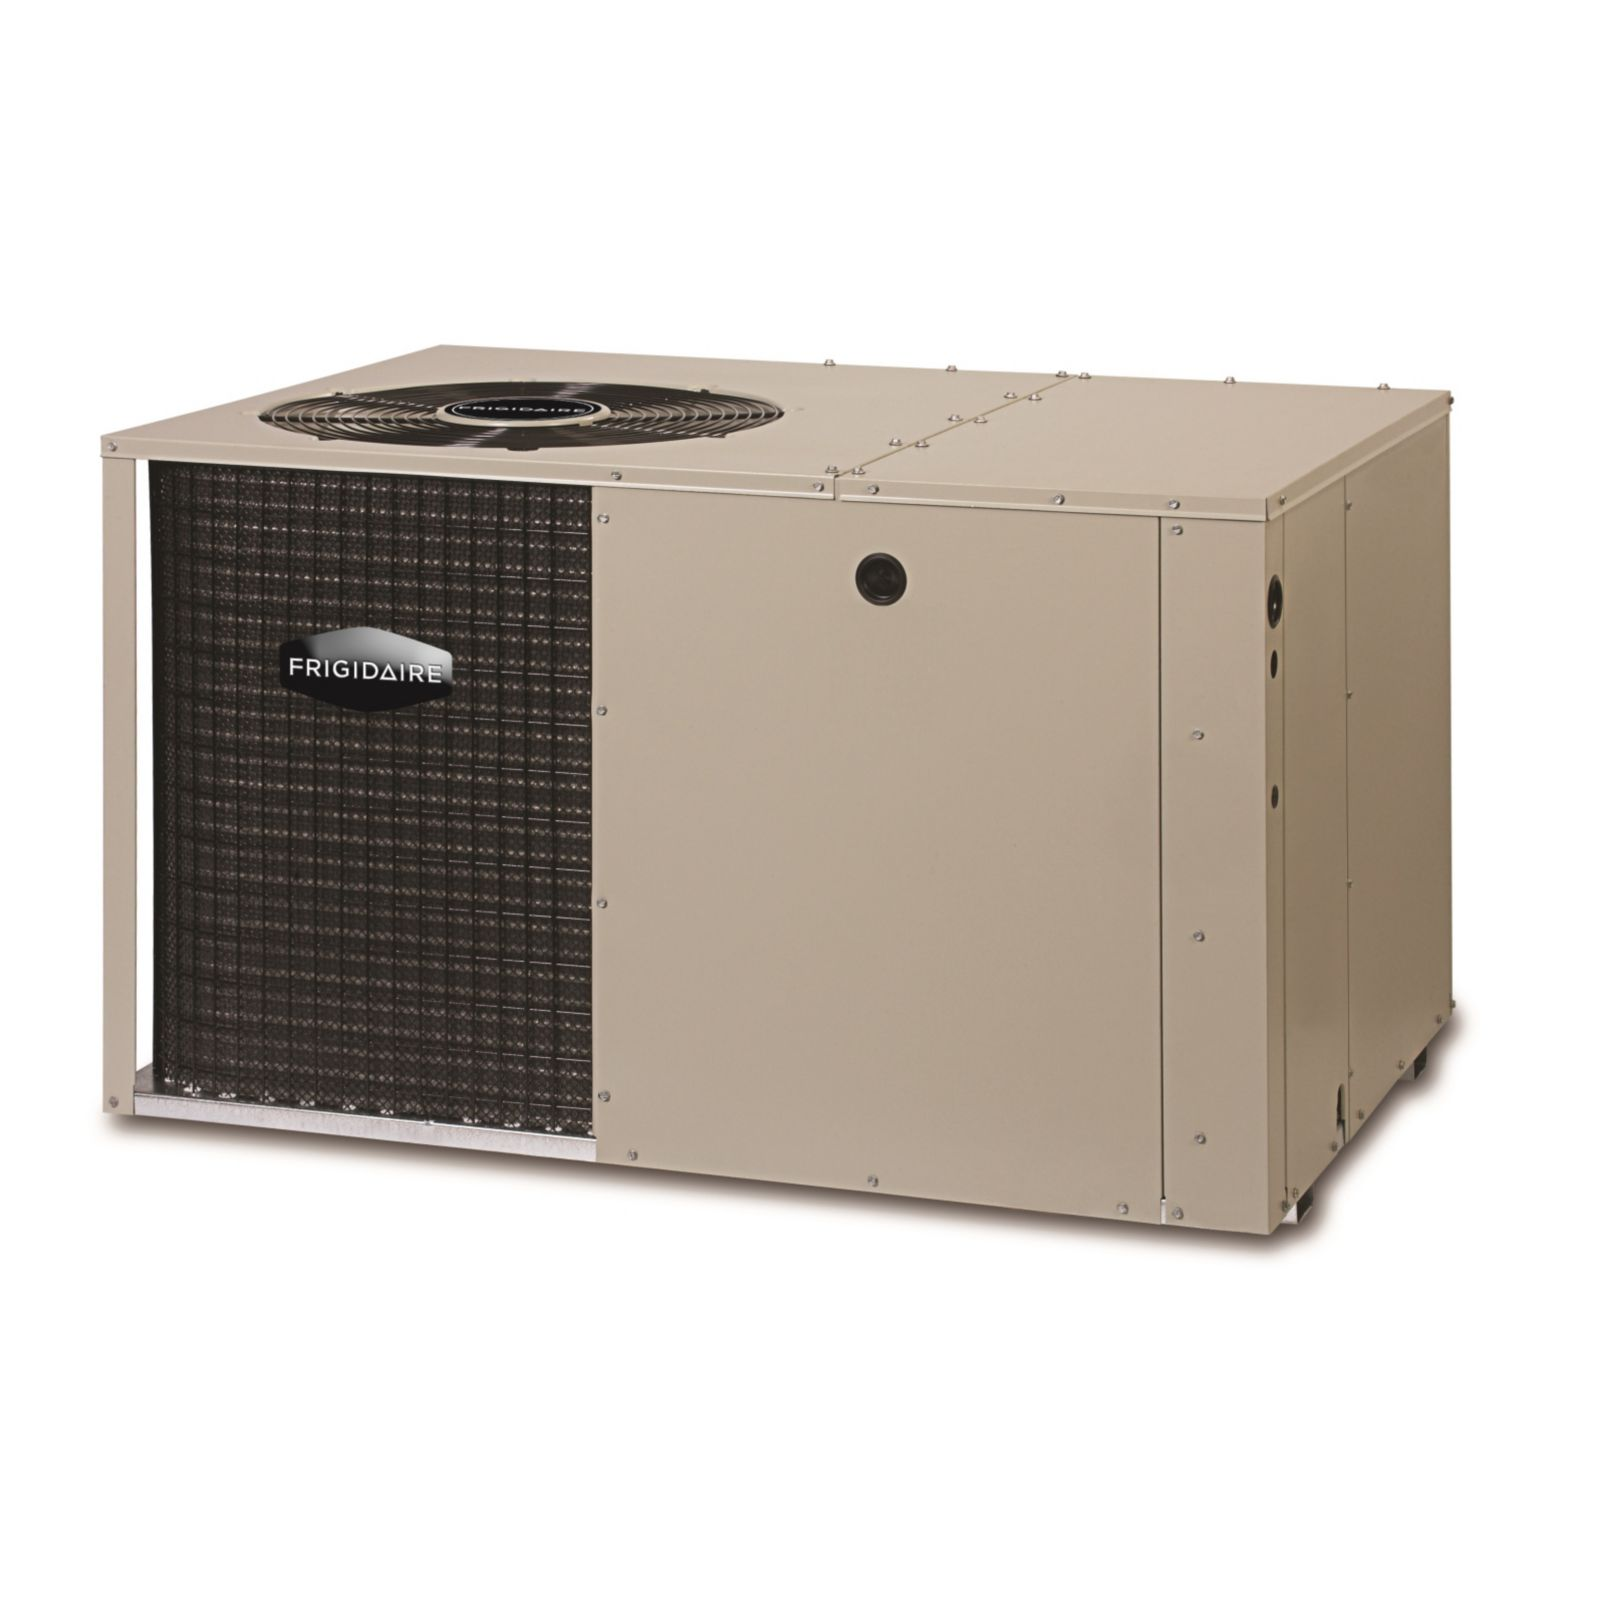 Frigidaire 922412 - P7RE-024K (AHRI 7615267) 2 Ton 14 SEER, Single Packaged Air Conditioner, R410A